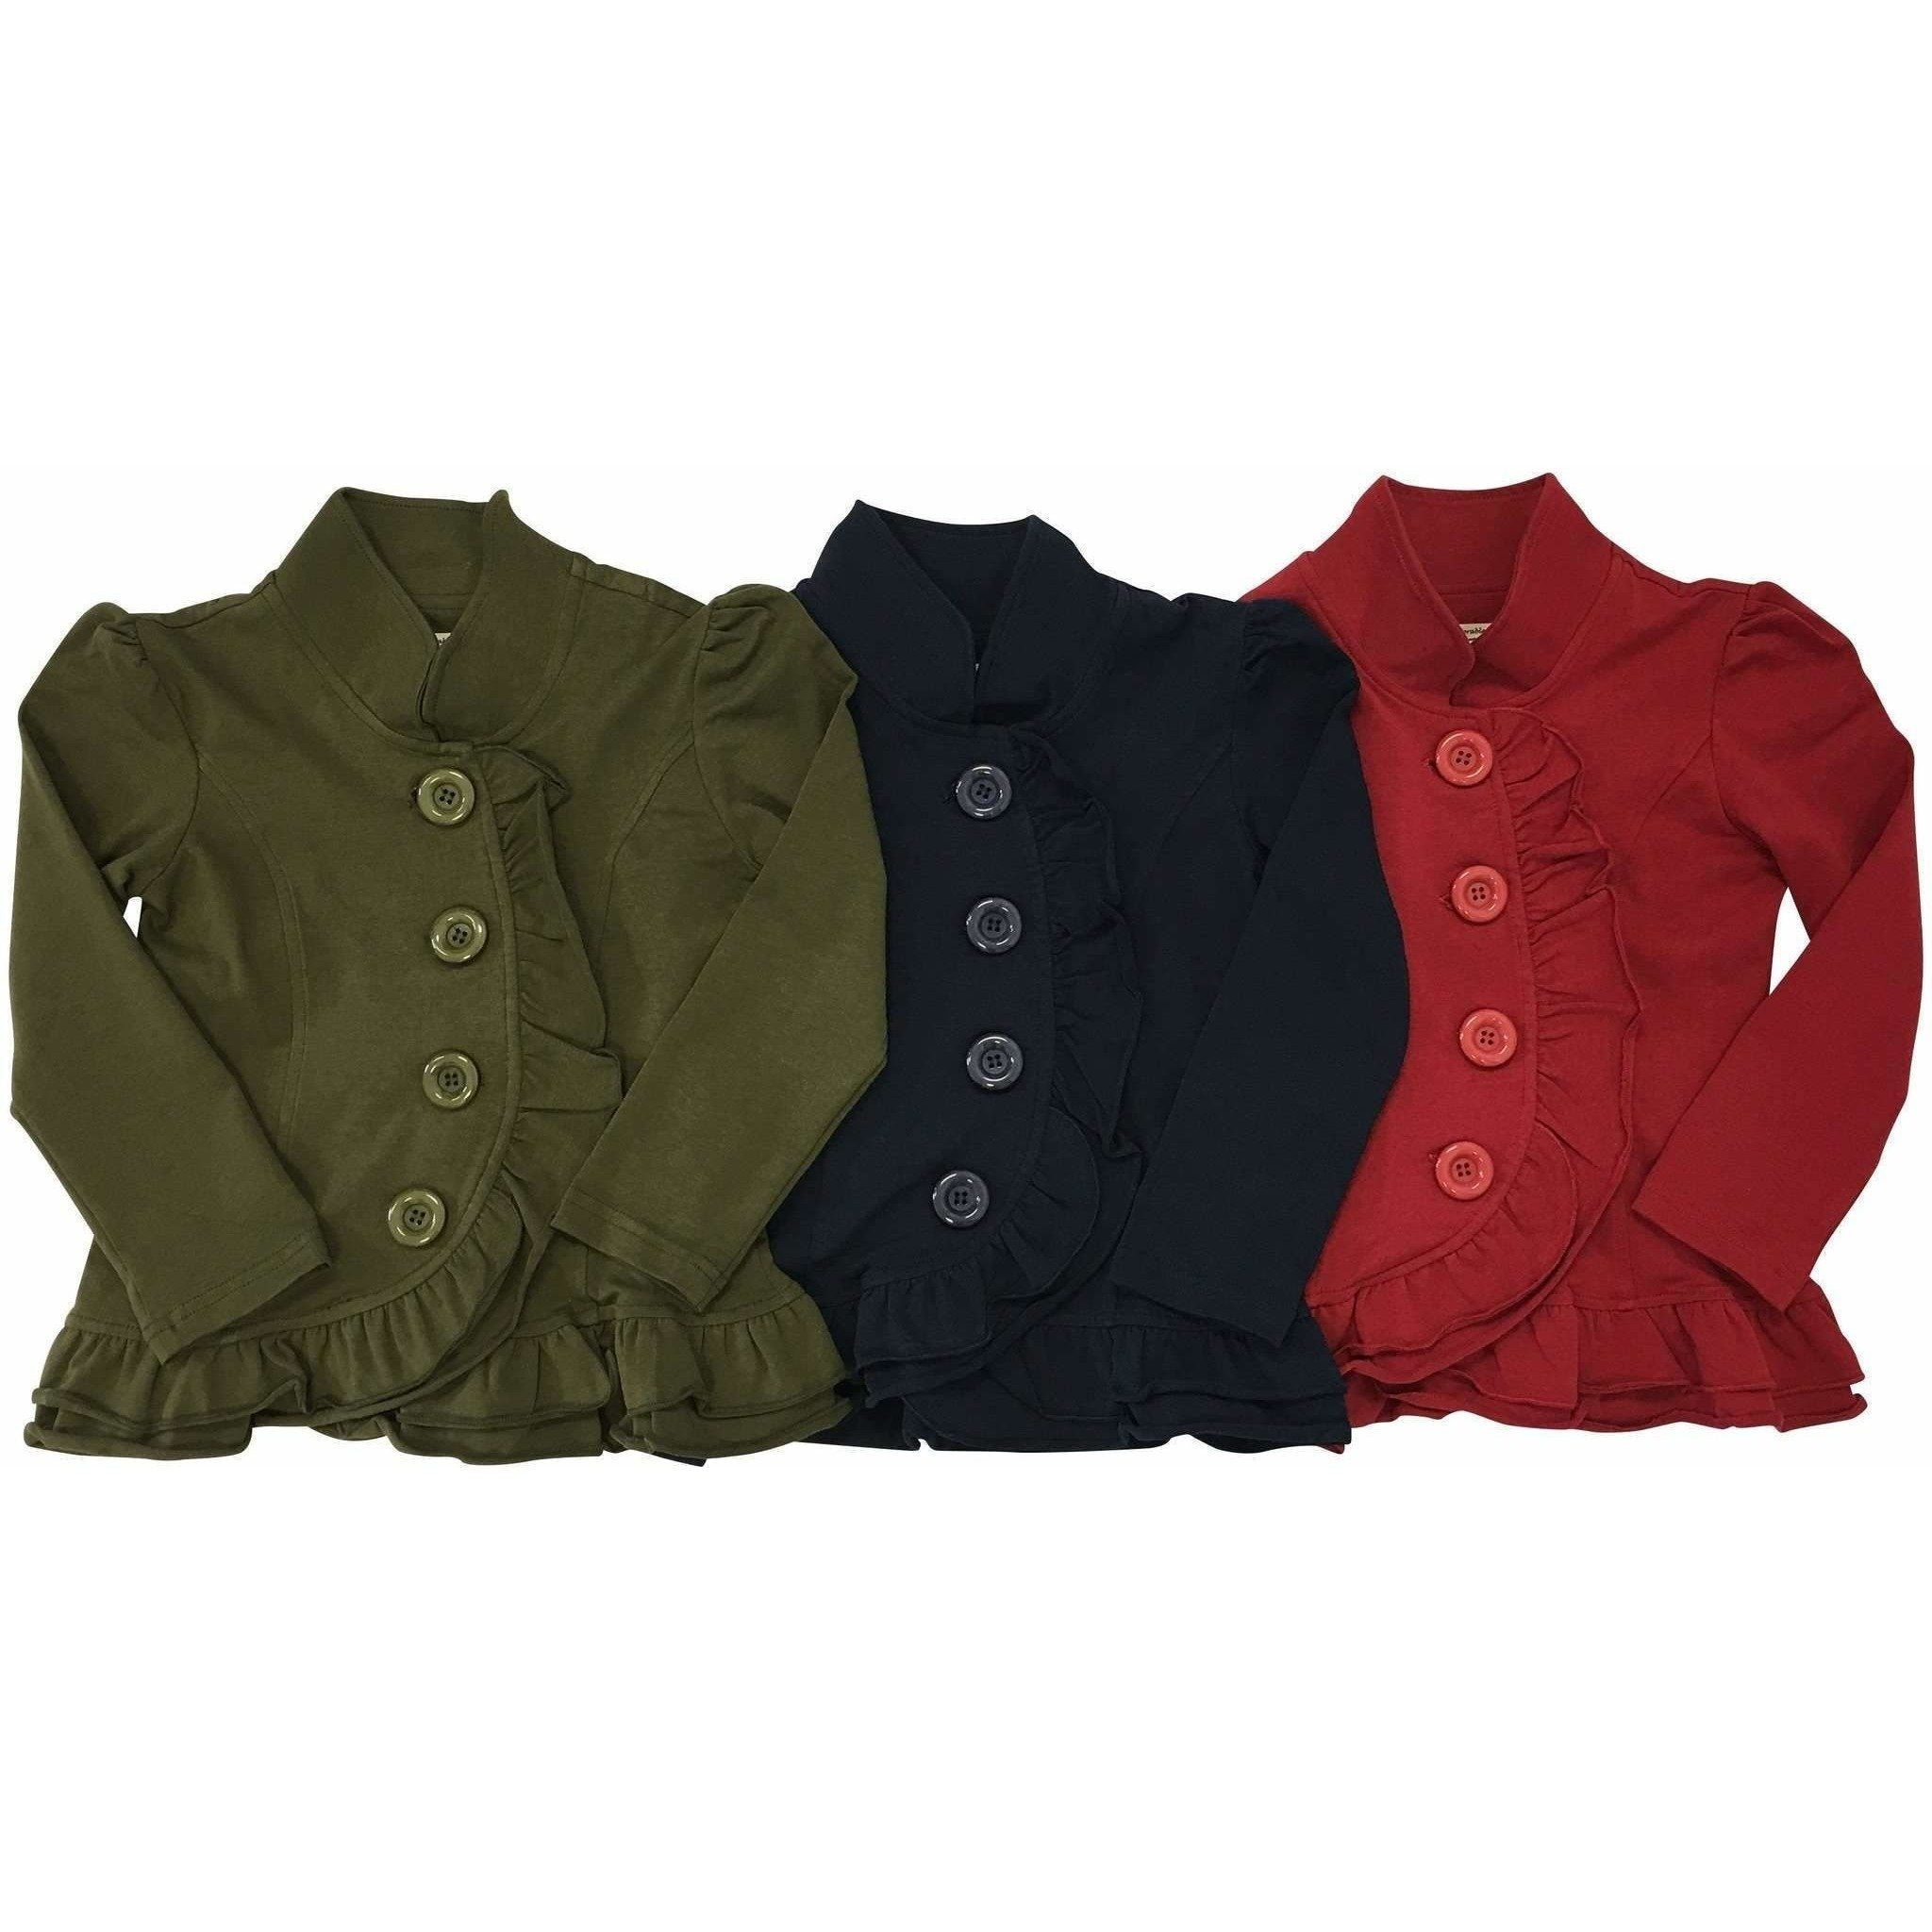 Big Button Cardigans - Adorable Essentials